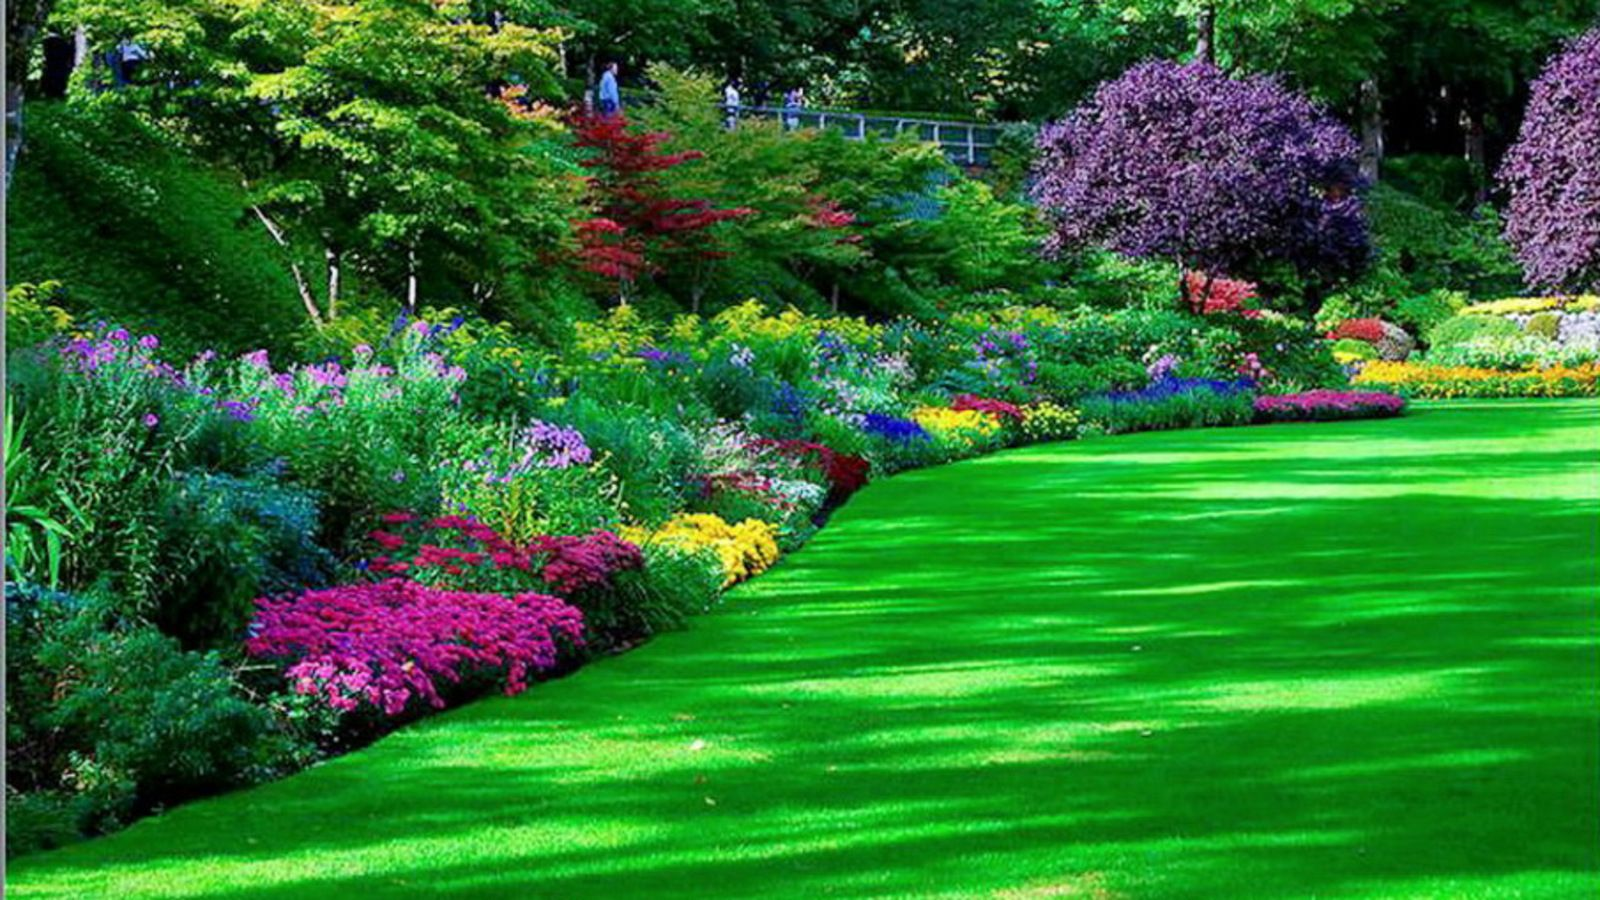 262 Garden HD Wallpapers | Backgrounds - Wallpaper Abyss